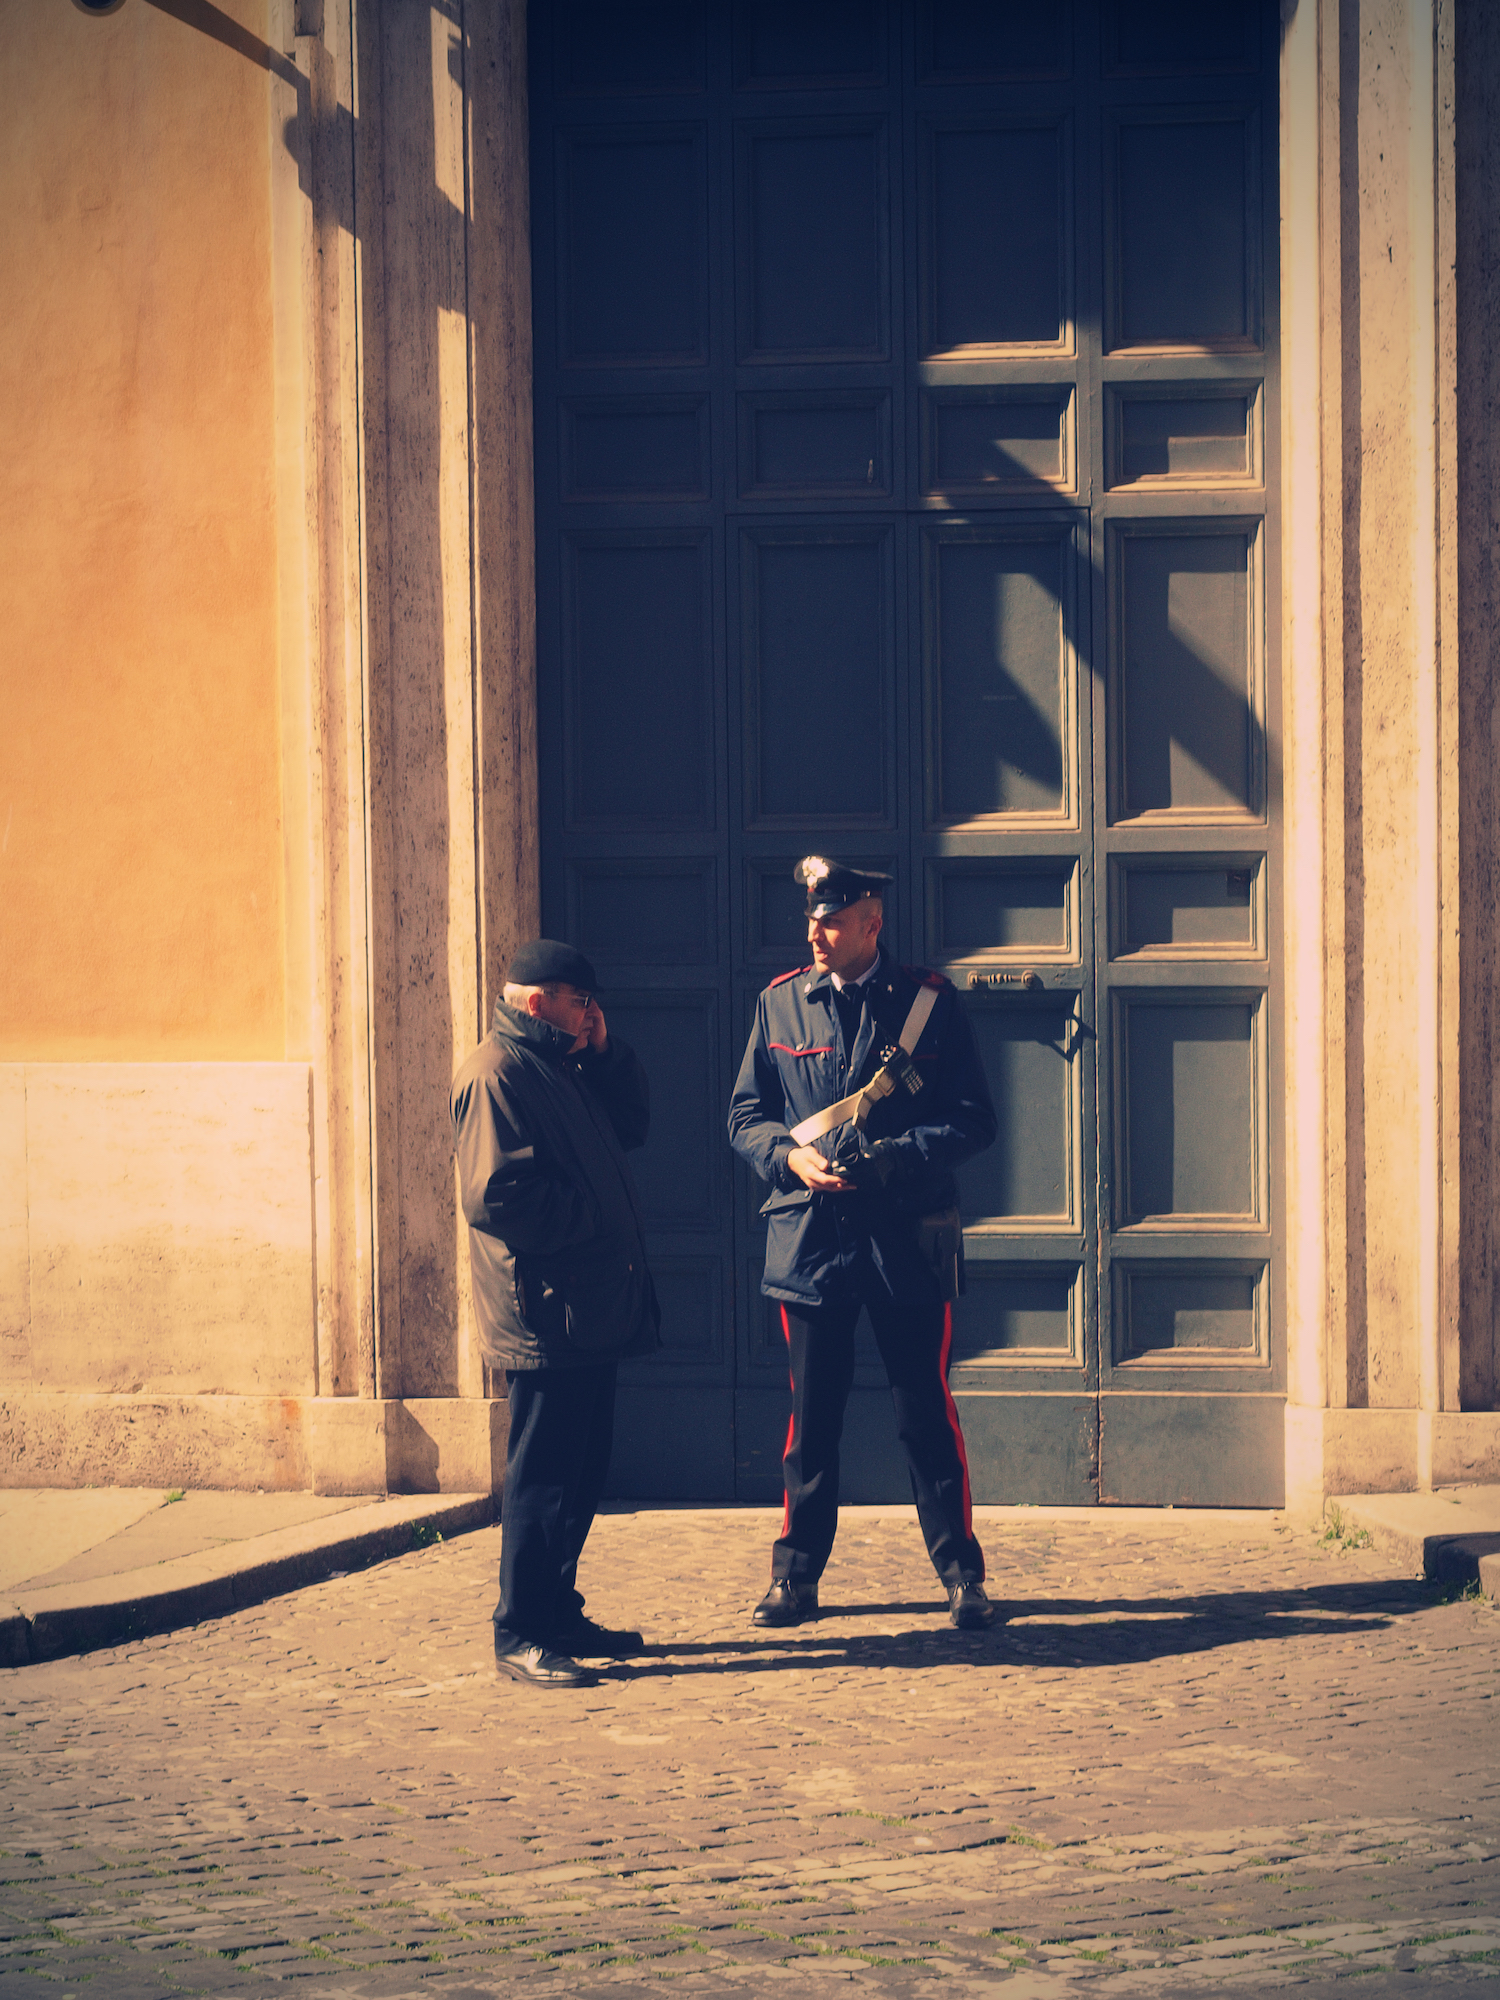 Polizia  / Part of 'Trip To Italy' series by Geena Matuson @geenamatuson, 2011.